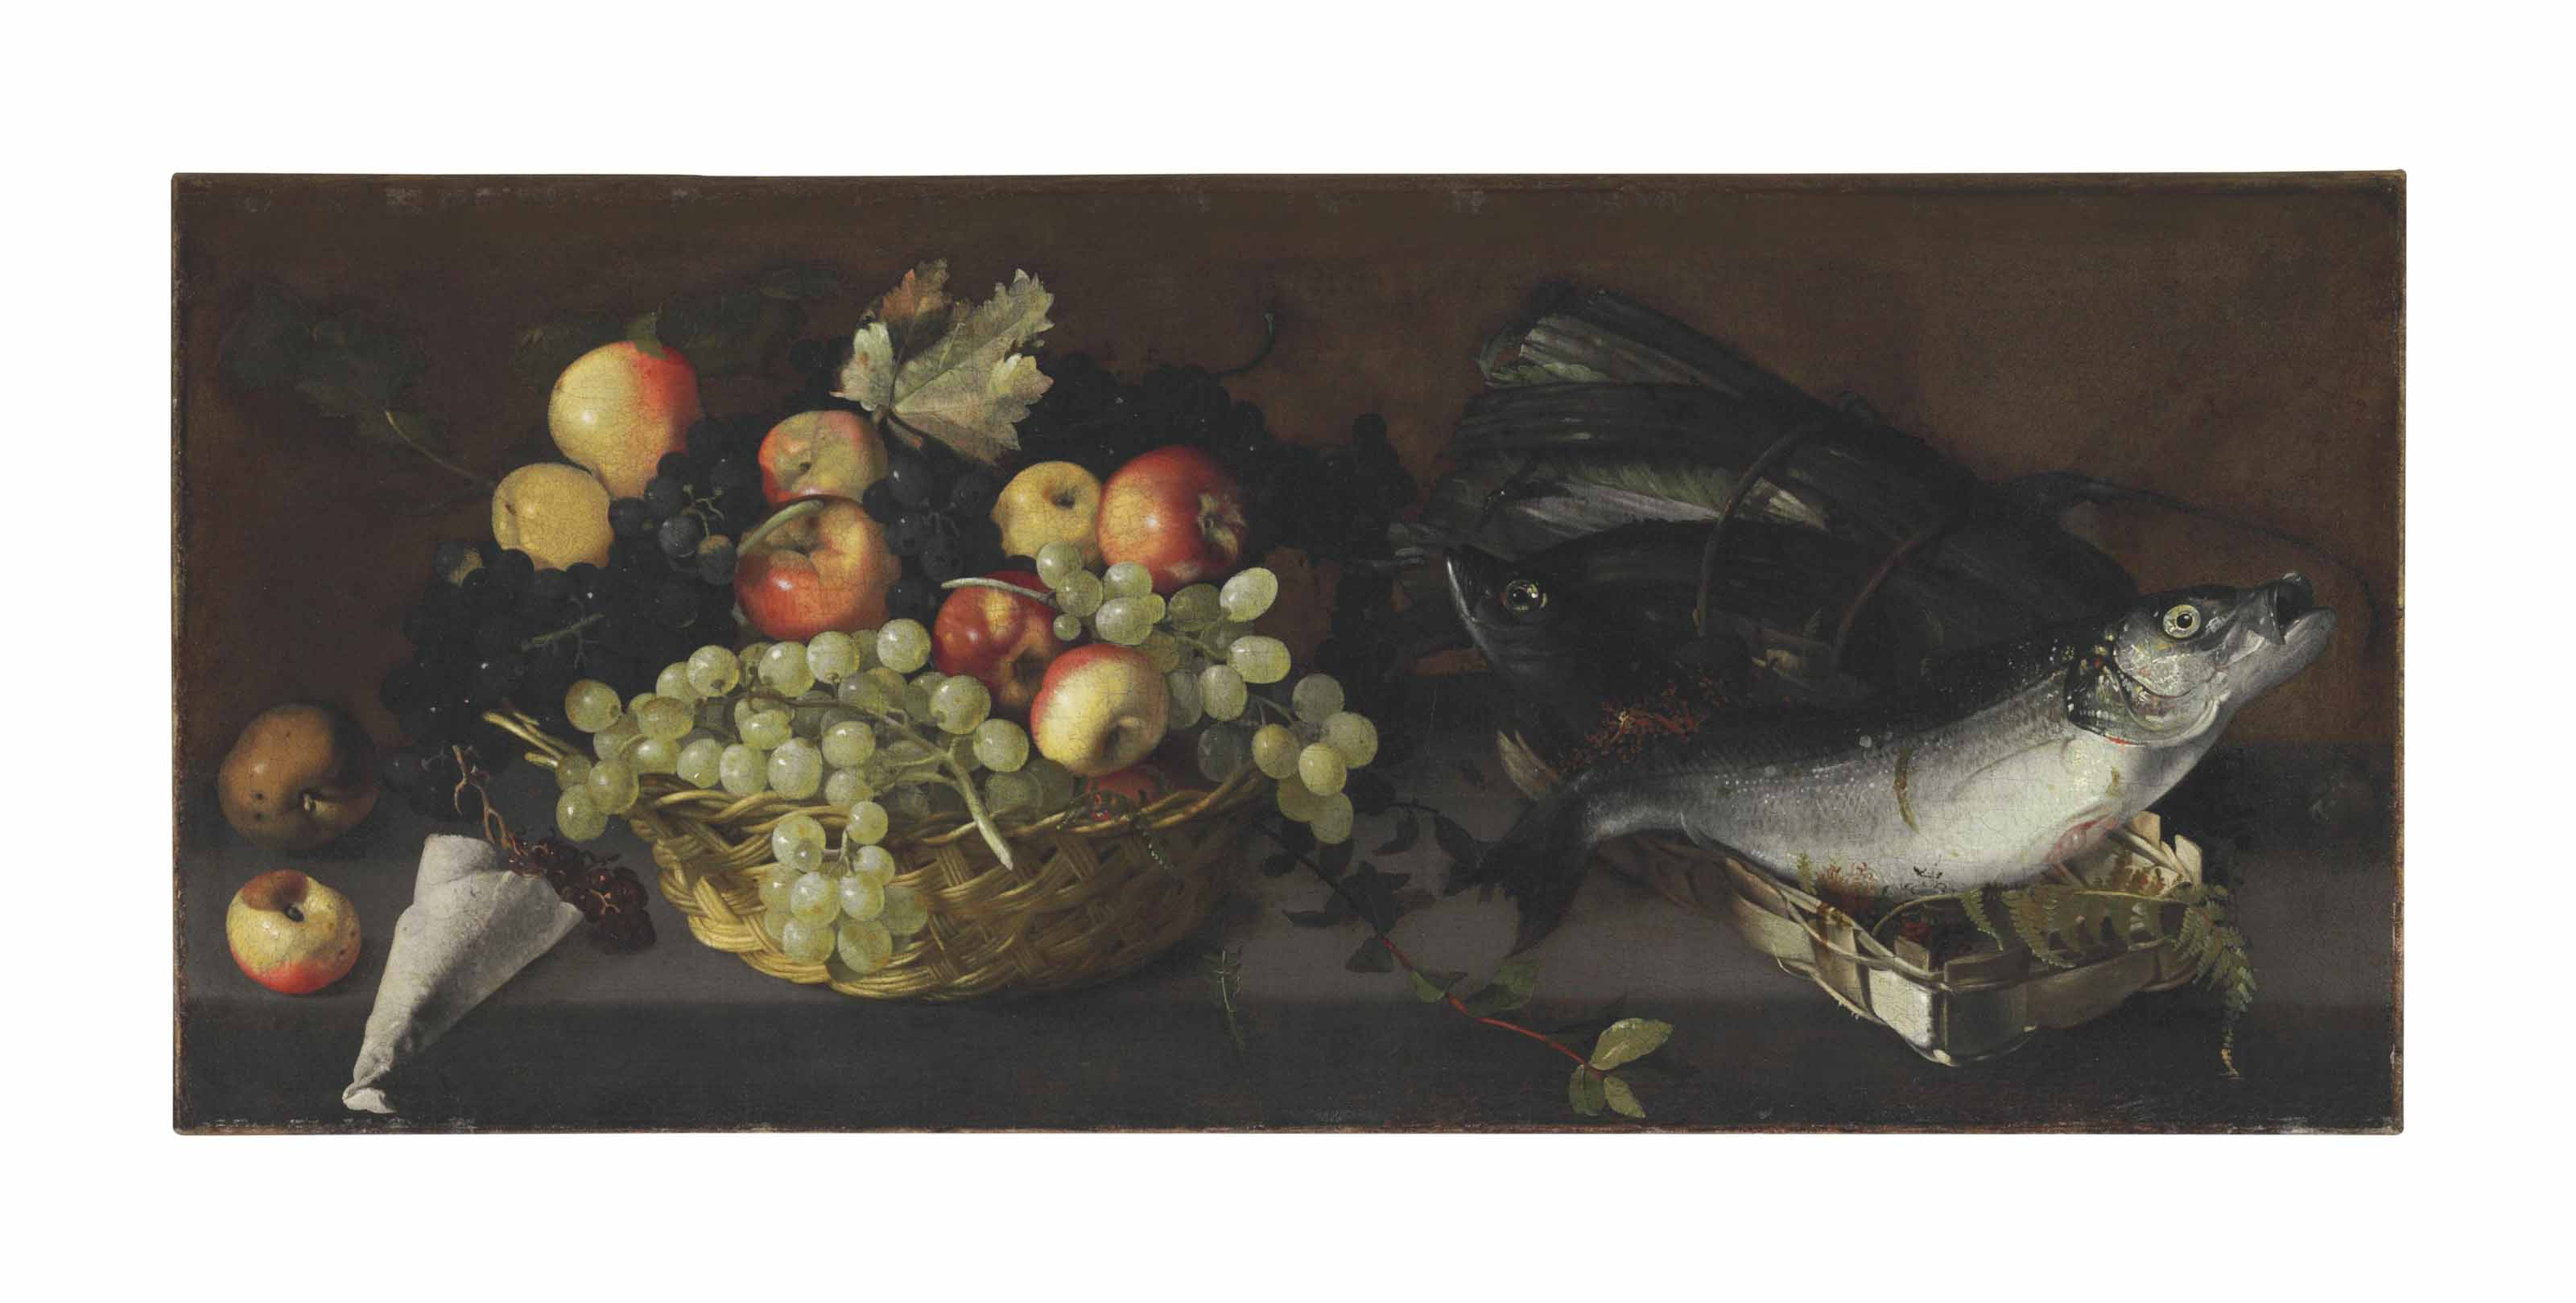 Apples and grapes in a basket with fish on a stone ledge